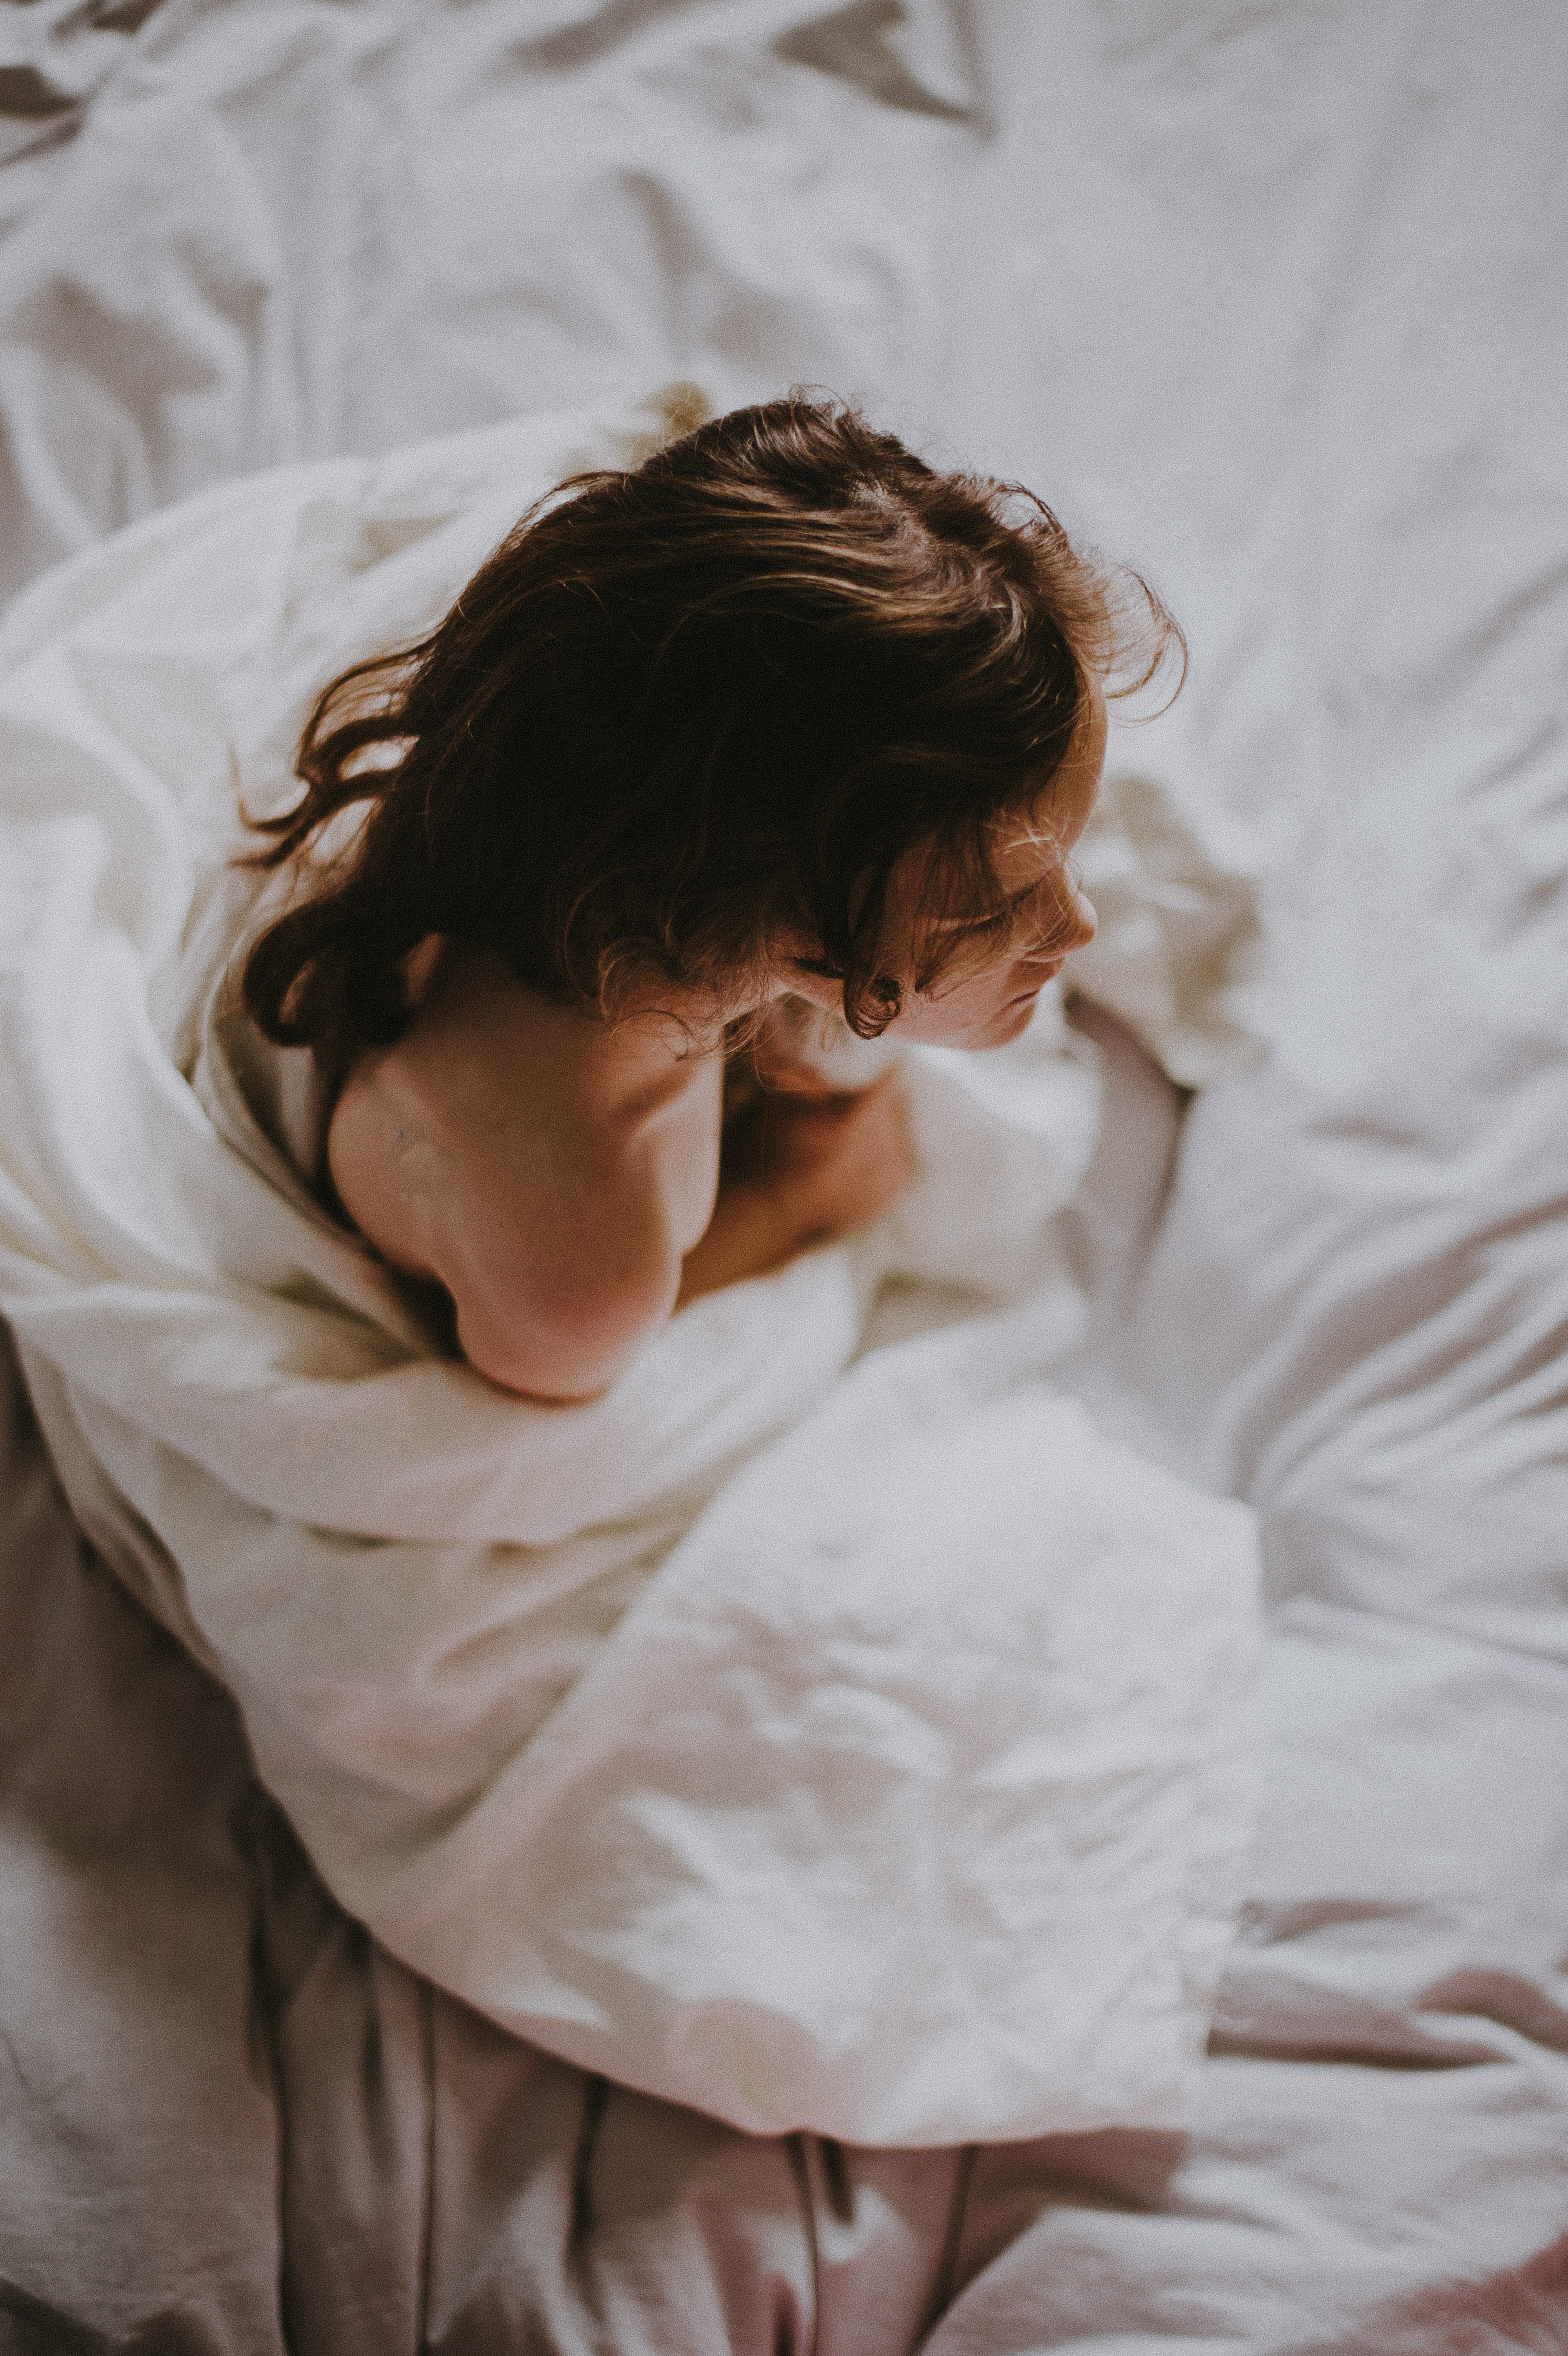 woman sitting on bed covered with white blanket